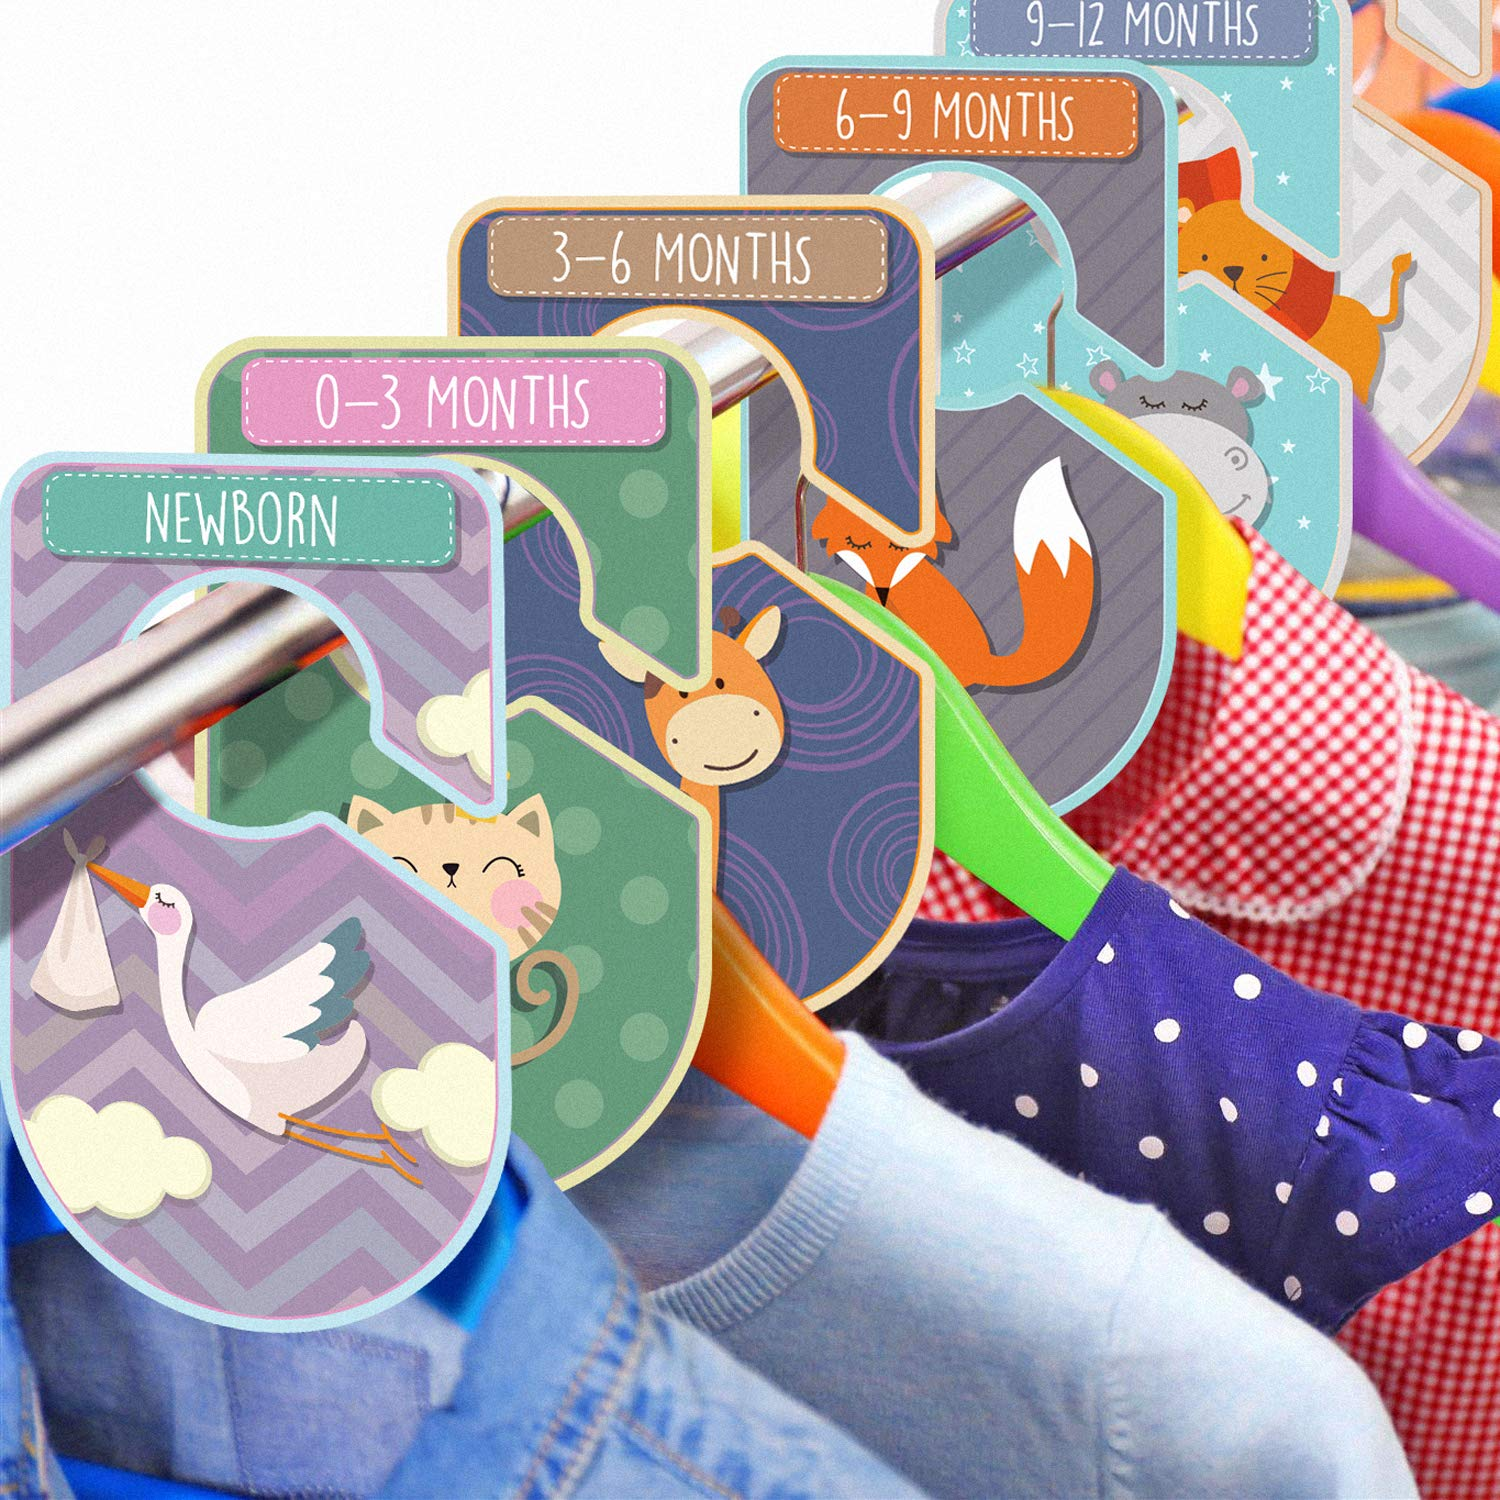 Baby Closet Dividers Set Pack of 20 Animal Themed Closet Organisers Arrange Clothes by Clothing Type Or Age Unisex Cardboard Hanger Rail